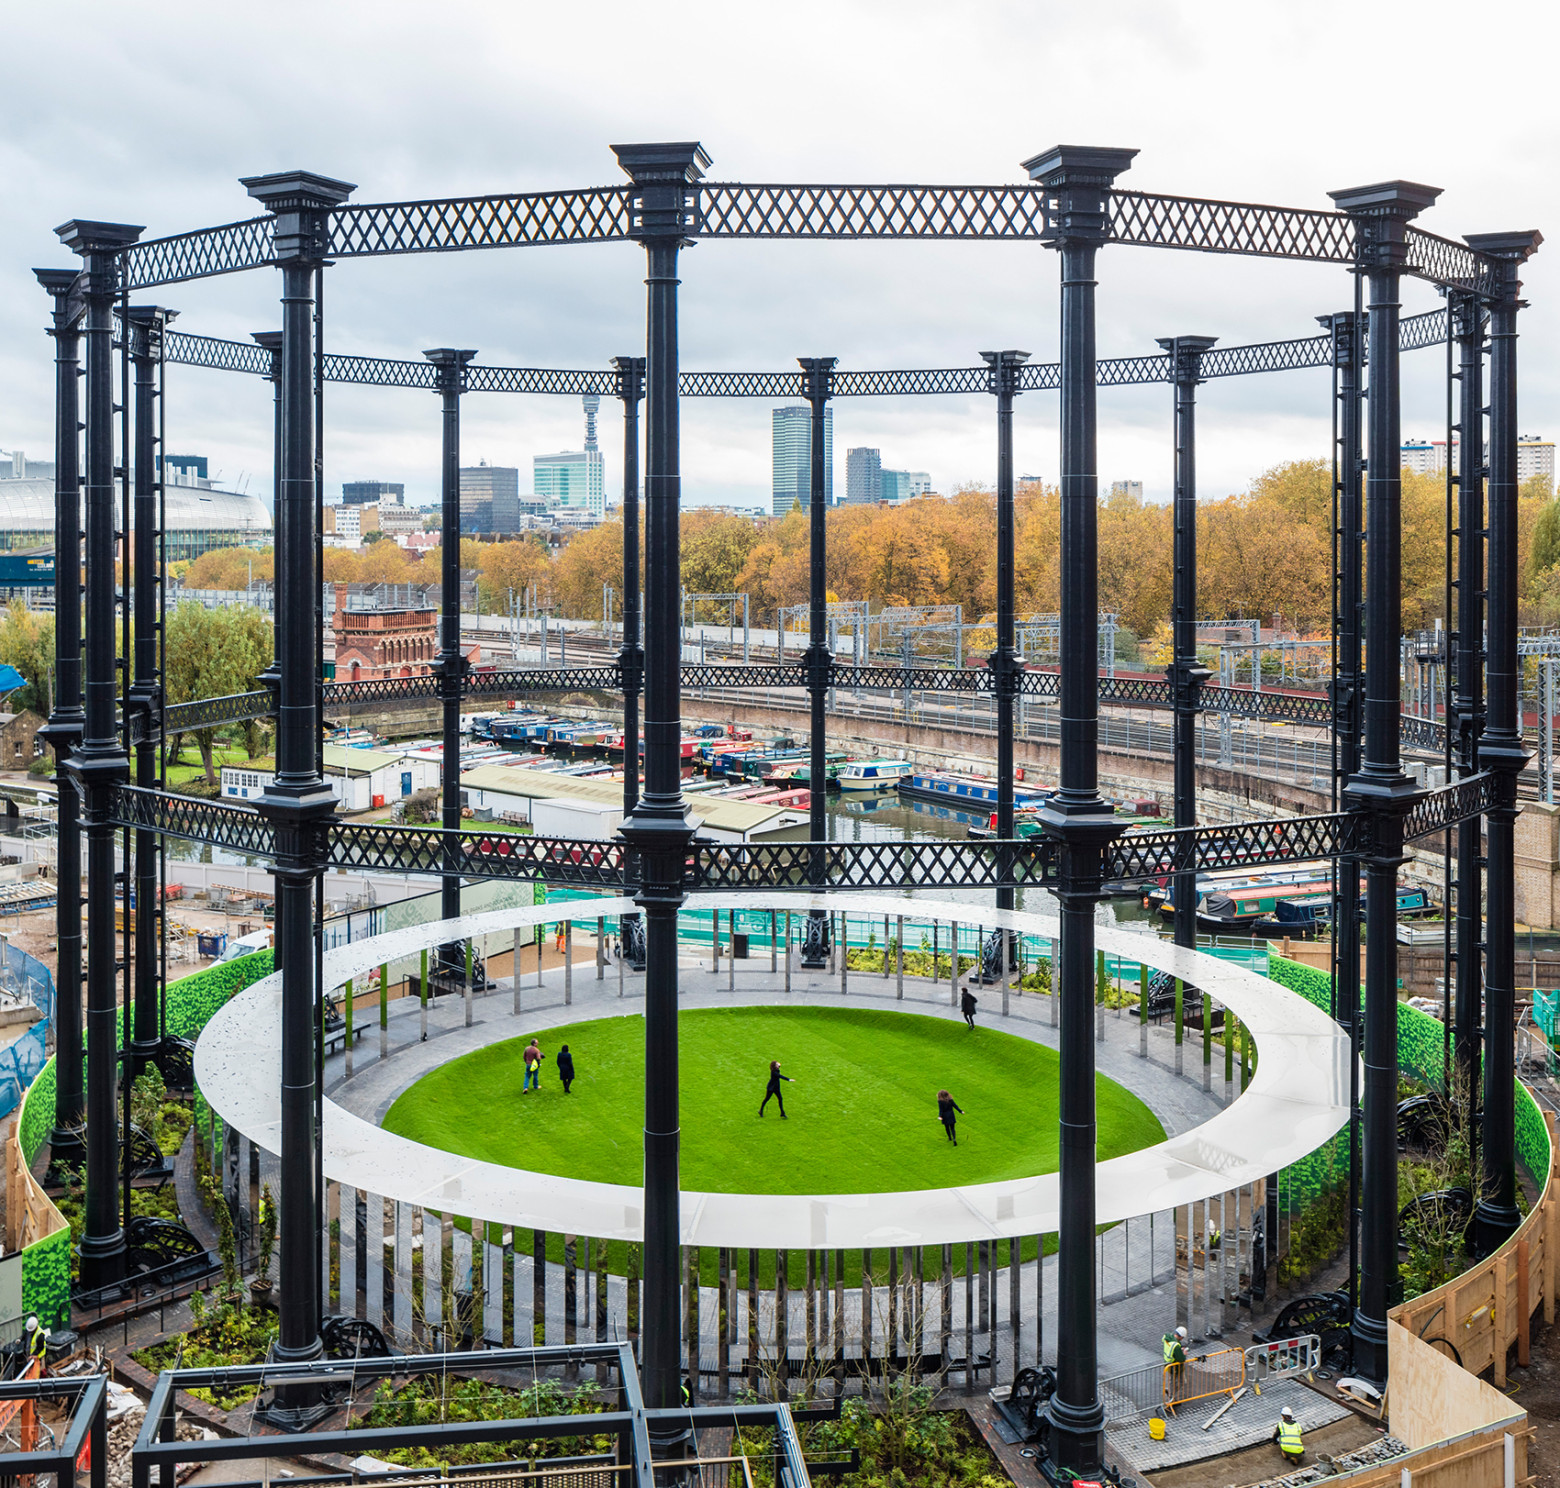 Gasholder Park open to visitors